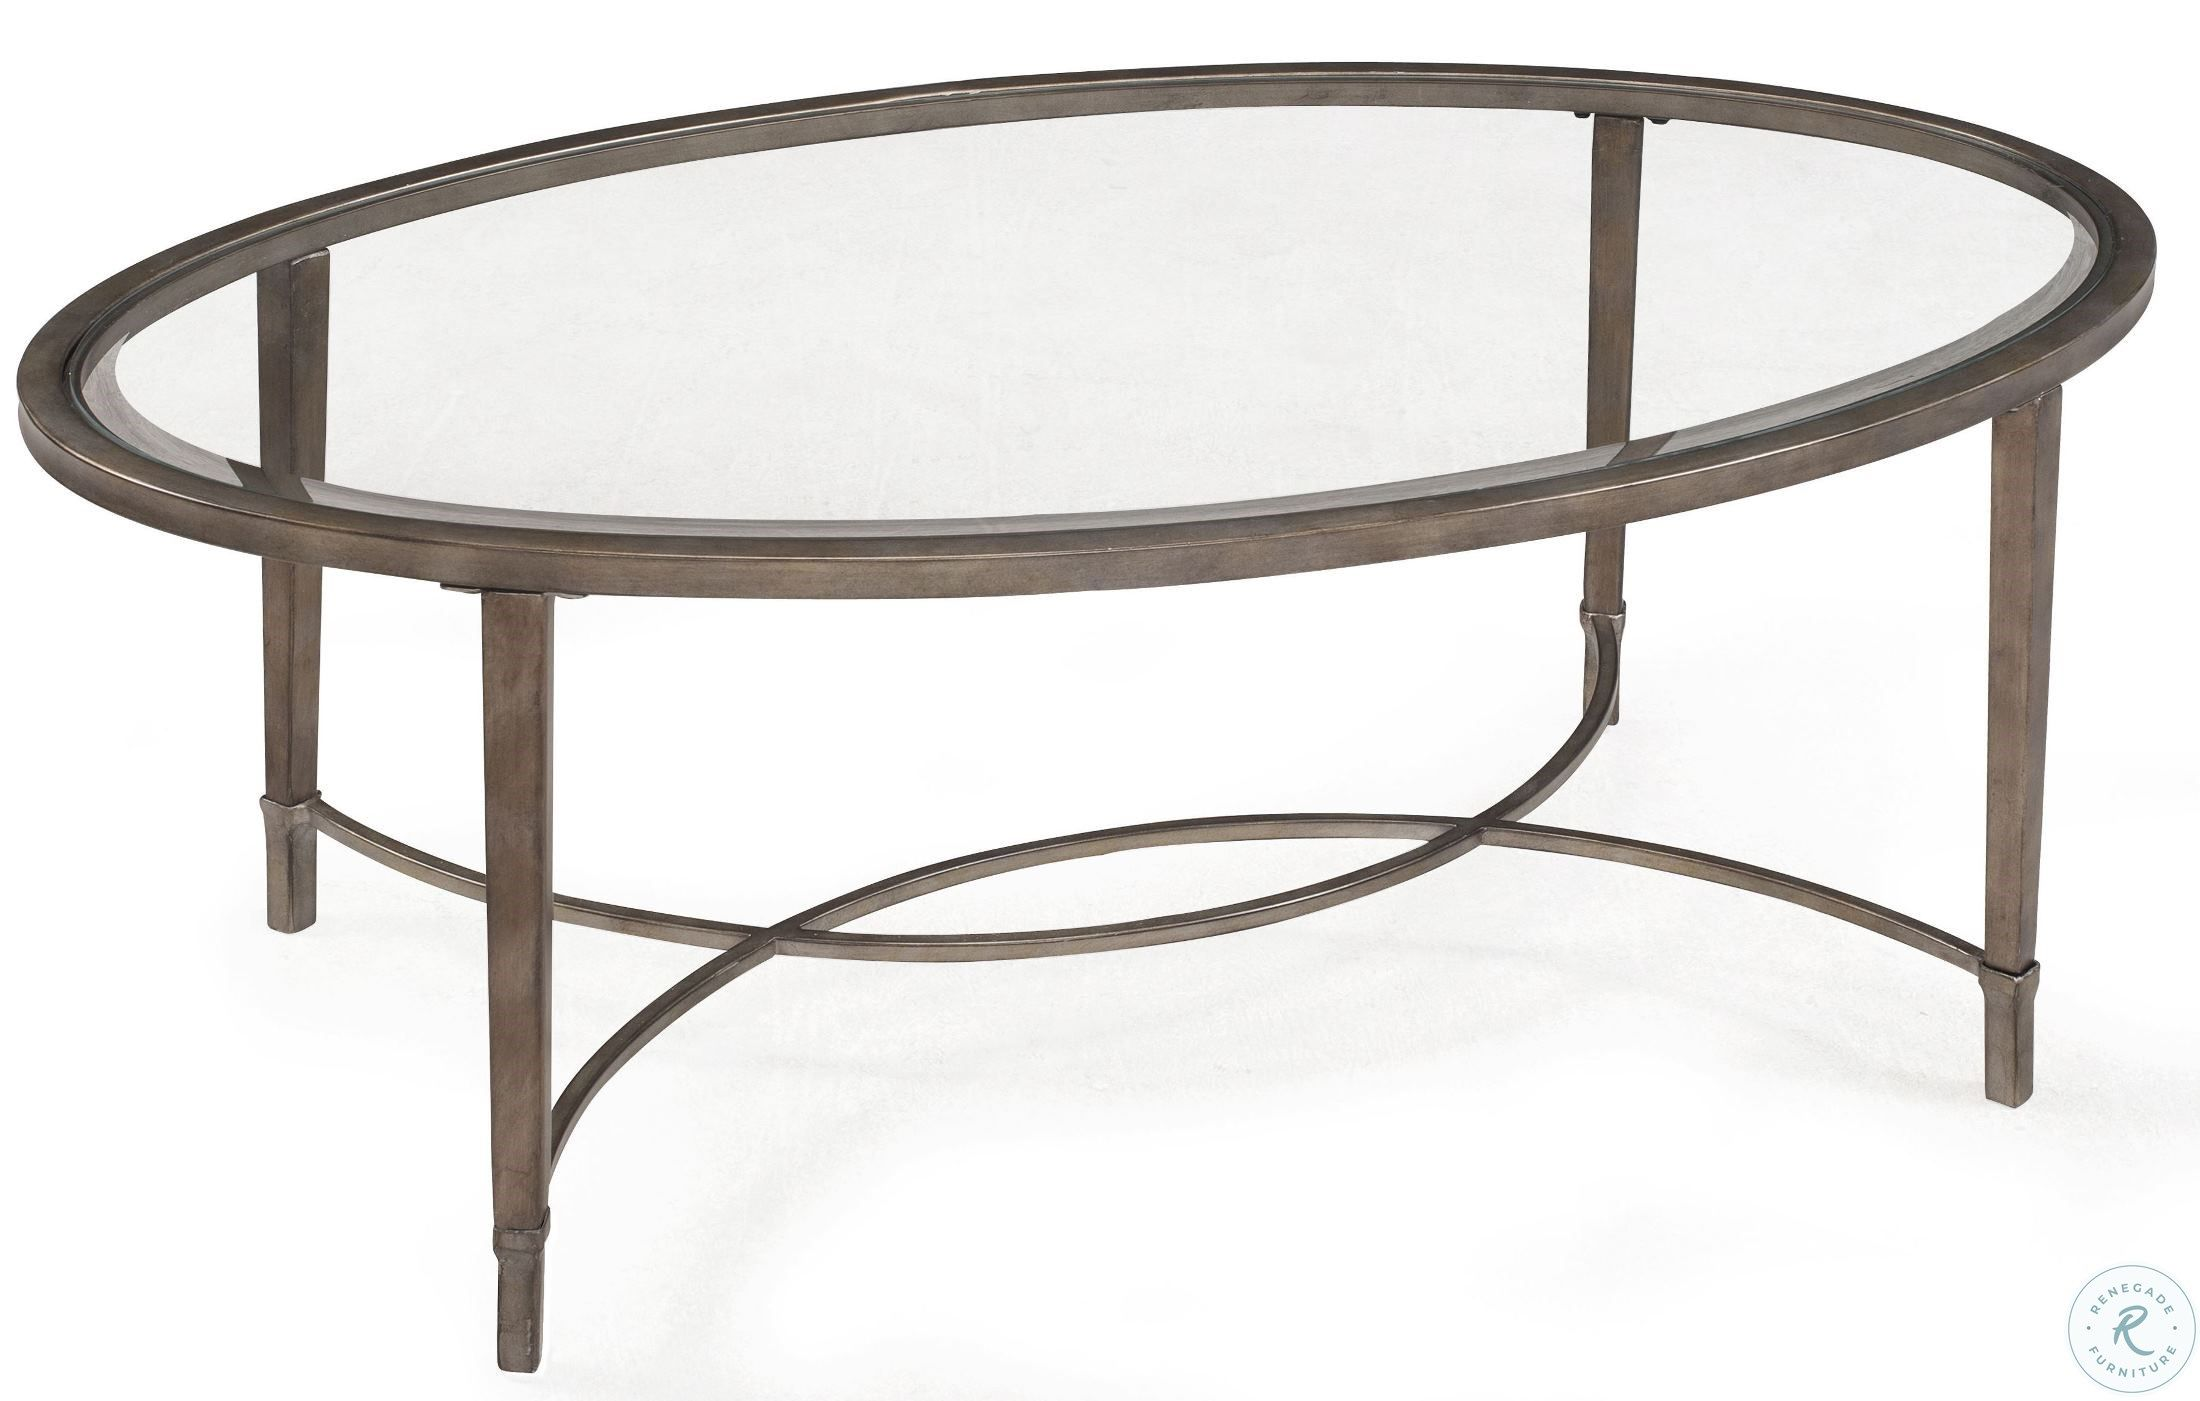 Copia Oval Cocktail Table In 2021 Oval Coffee Tables Coffee Table Glass Coffee Table [ 1401 x 2200 Pixel ]